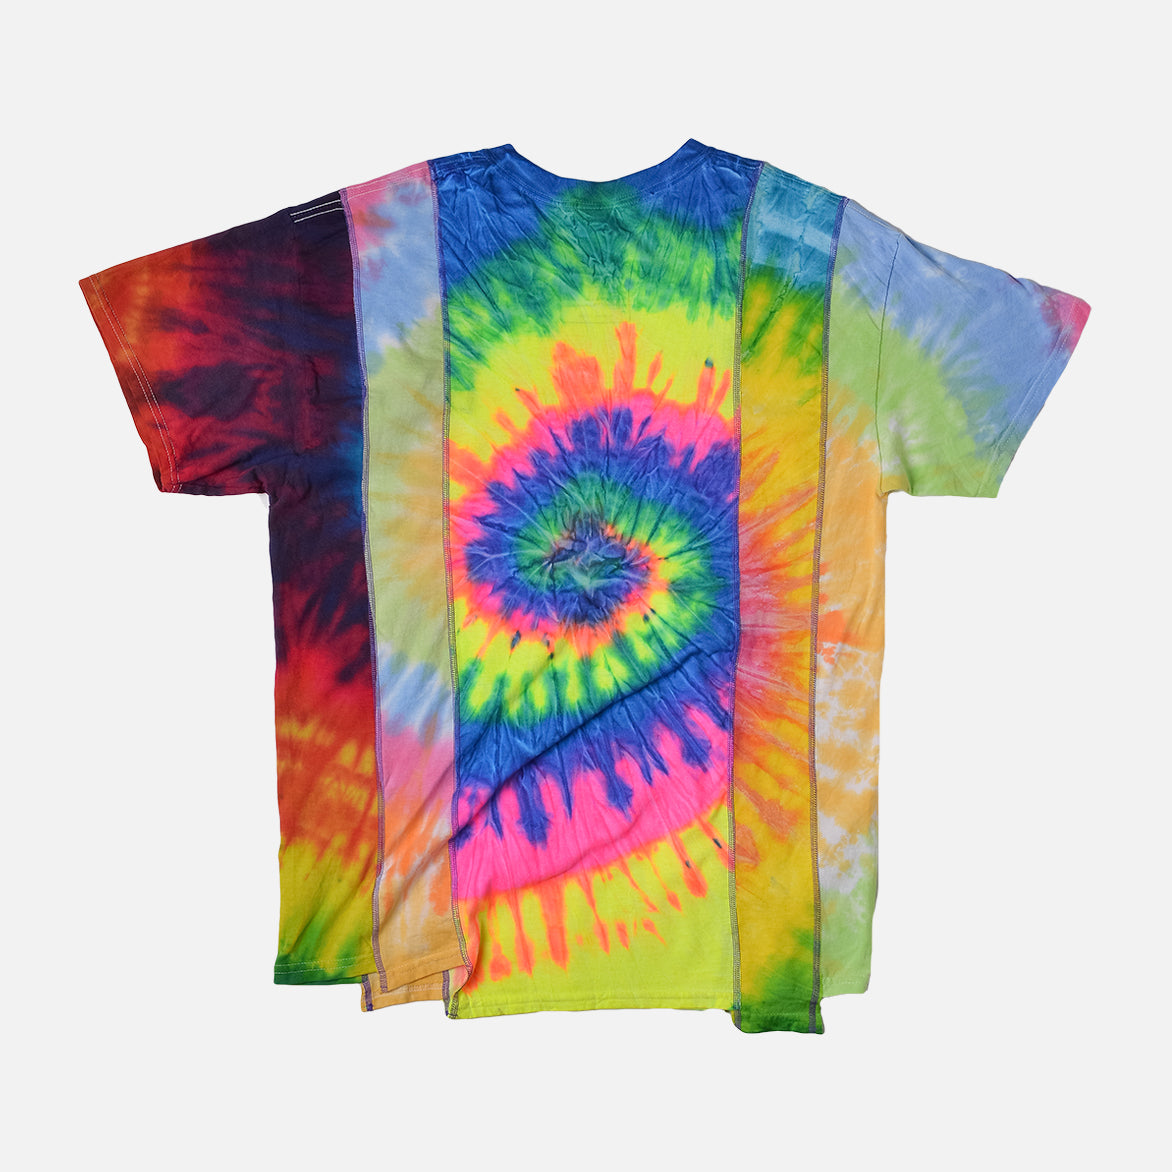 5 CUTS TIE DYE TEE SS19 (MEDIUM 2) - MULTI